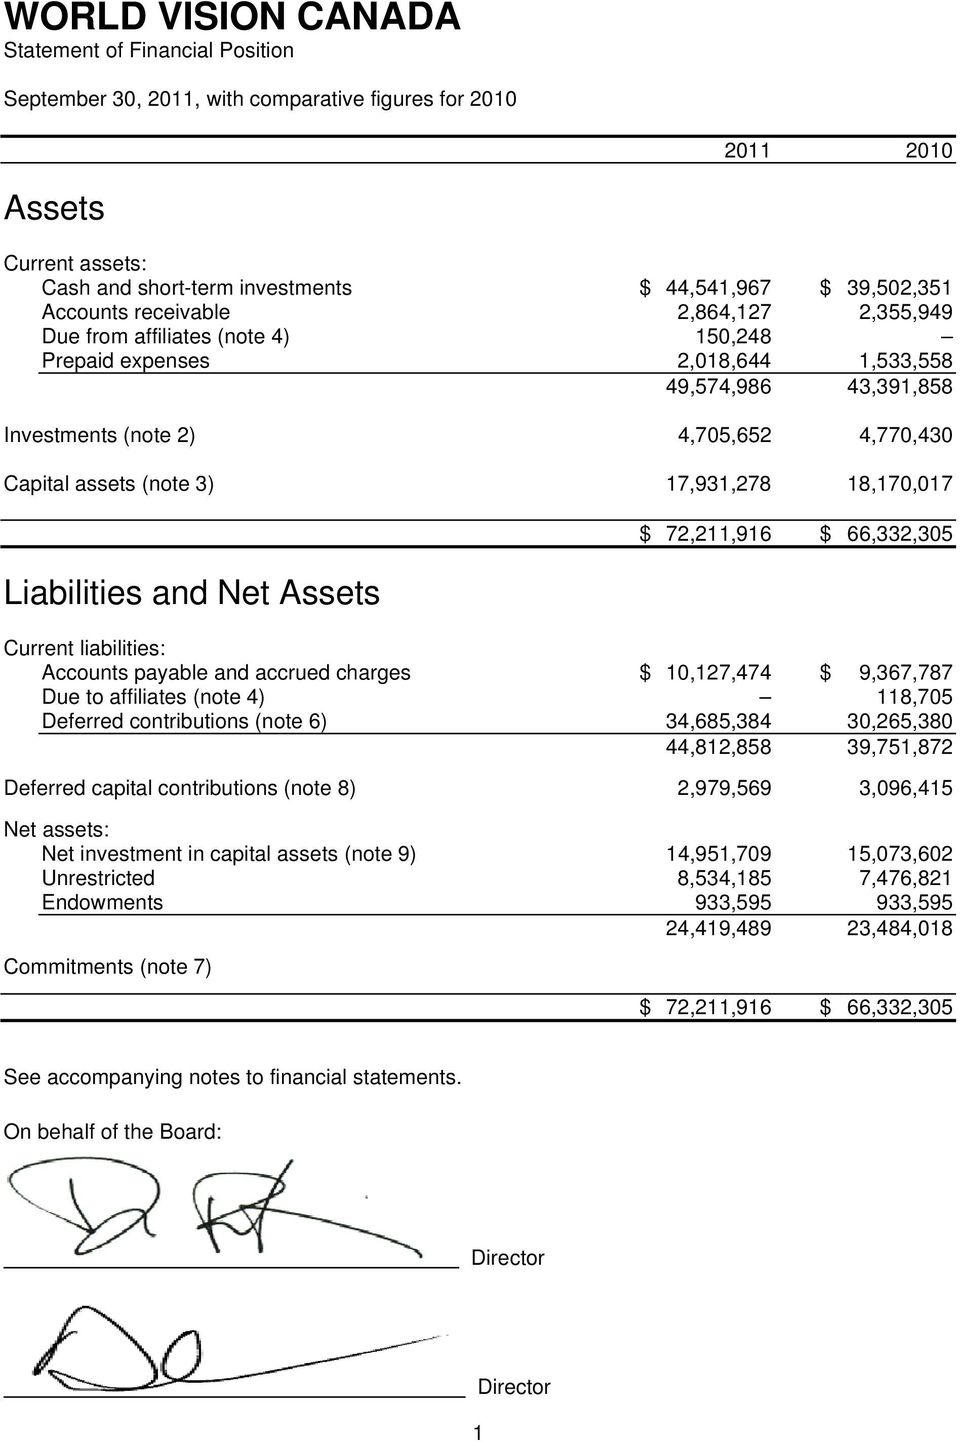 Liabilities and Net Assets $ 72,211,916 $ 66,332,305 Current liabilities: Accounts payable and accrued charges $ 10,127,474 $ 9,367,787 Due to affiliates (note 4) 118,705 Deferred contributions (note